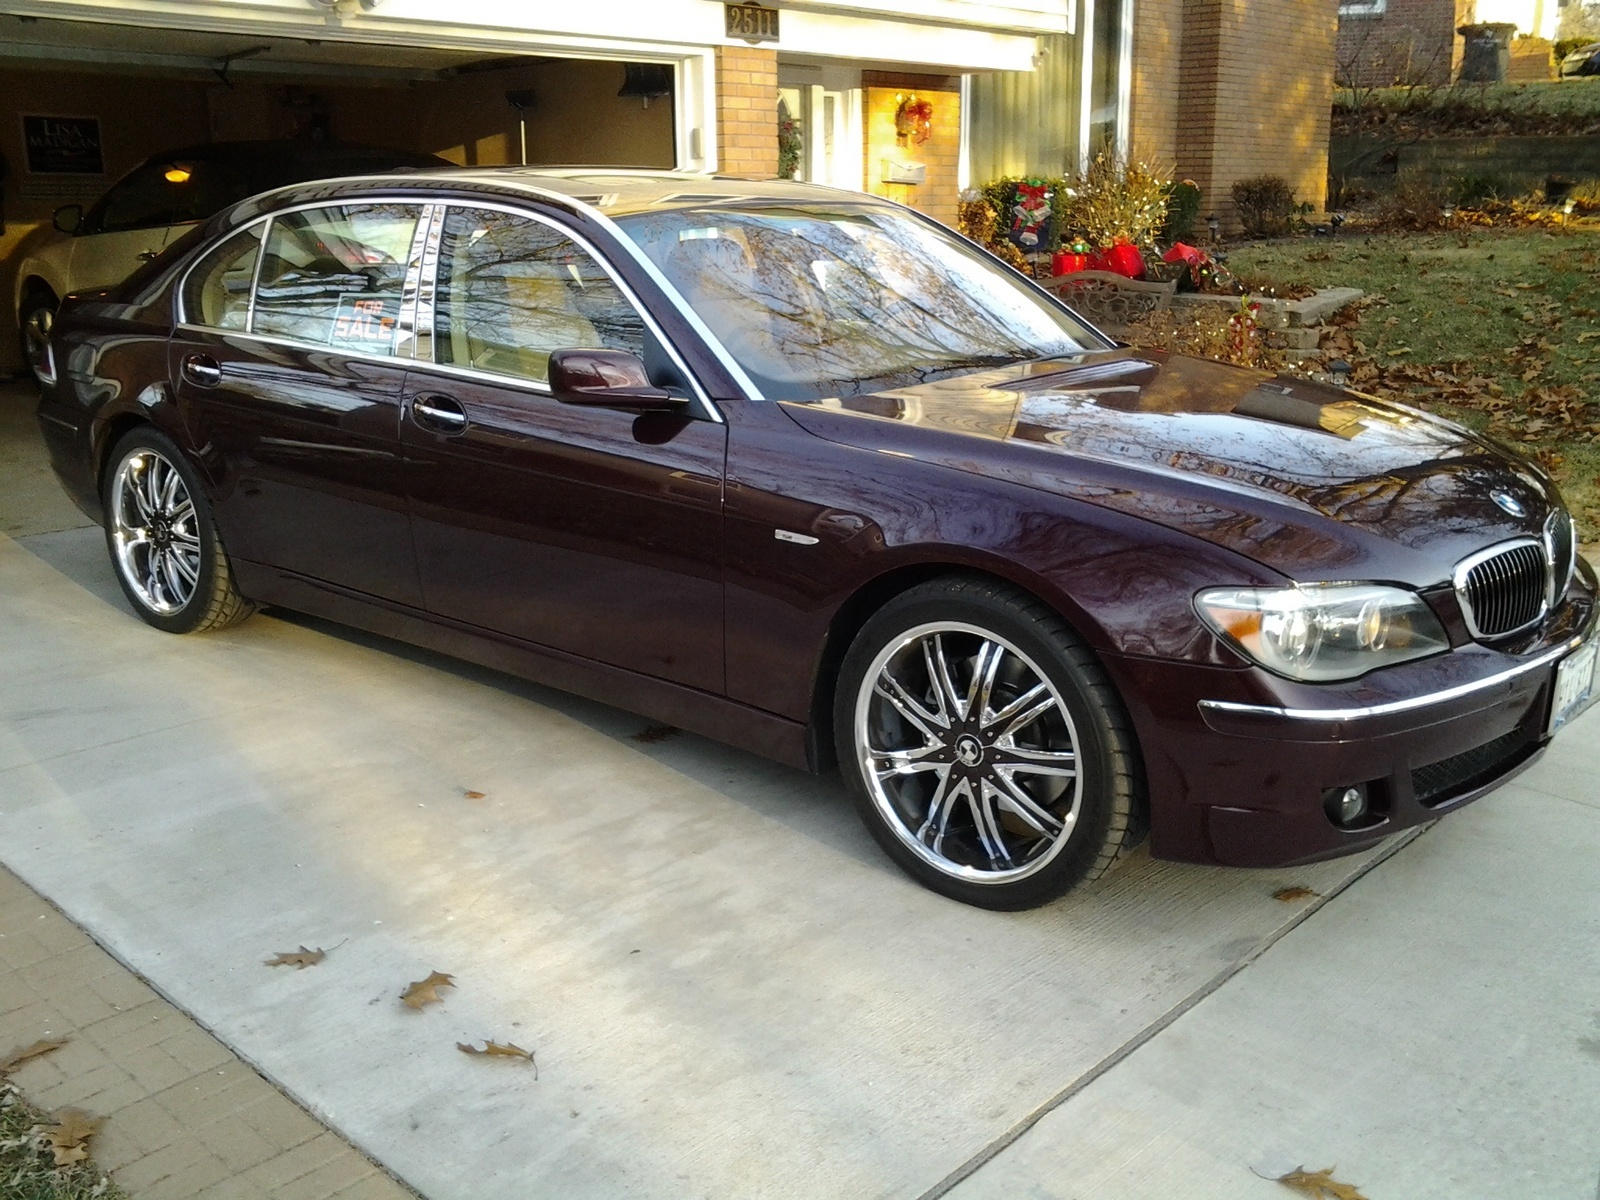 2006 Bmw 750I Problems >> Bmw 7 Series Questions Buying A 2006 Bmw With Over 90 000 Miles